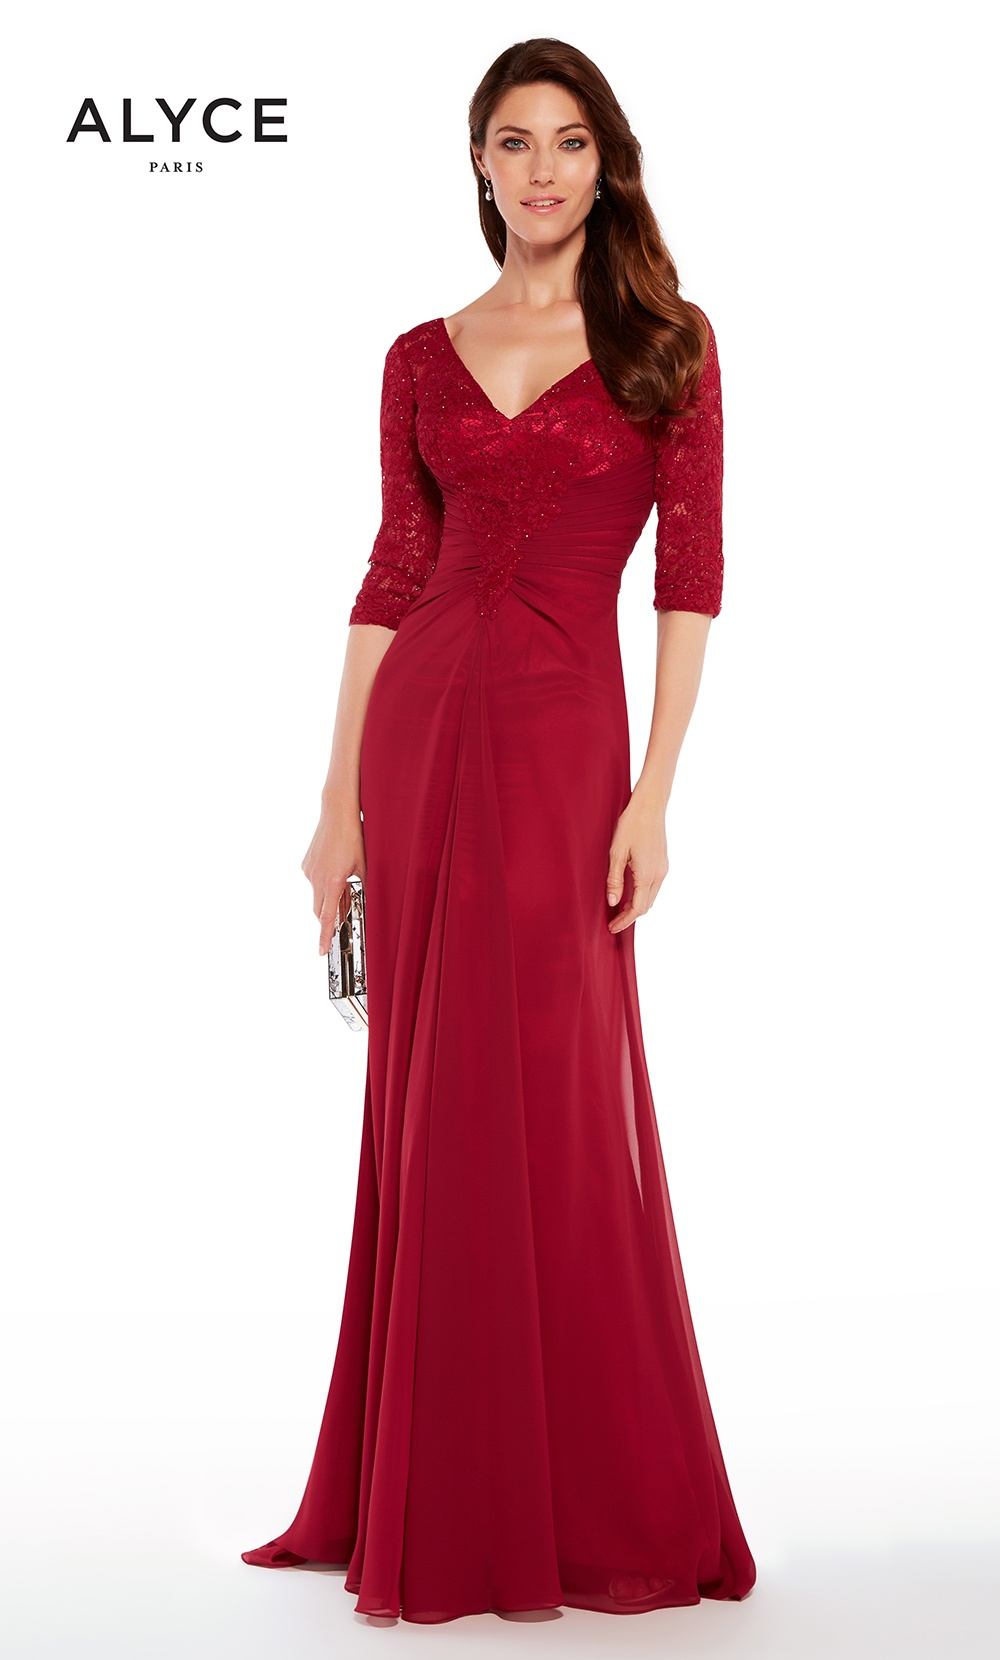 This Alyce dress is on fire! It's perfect for you!Available to order in a variety of colors and sizes.